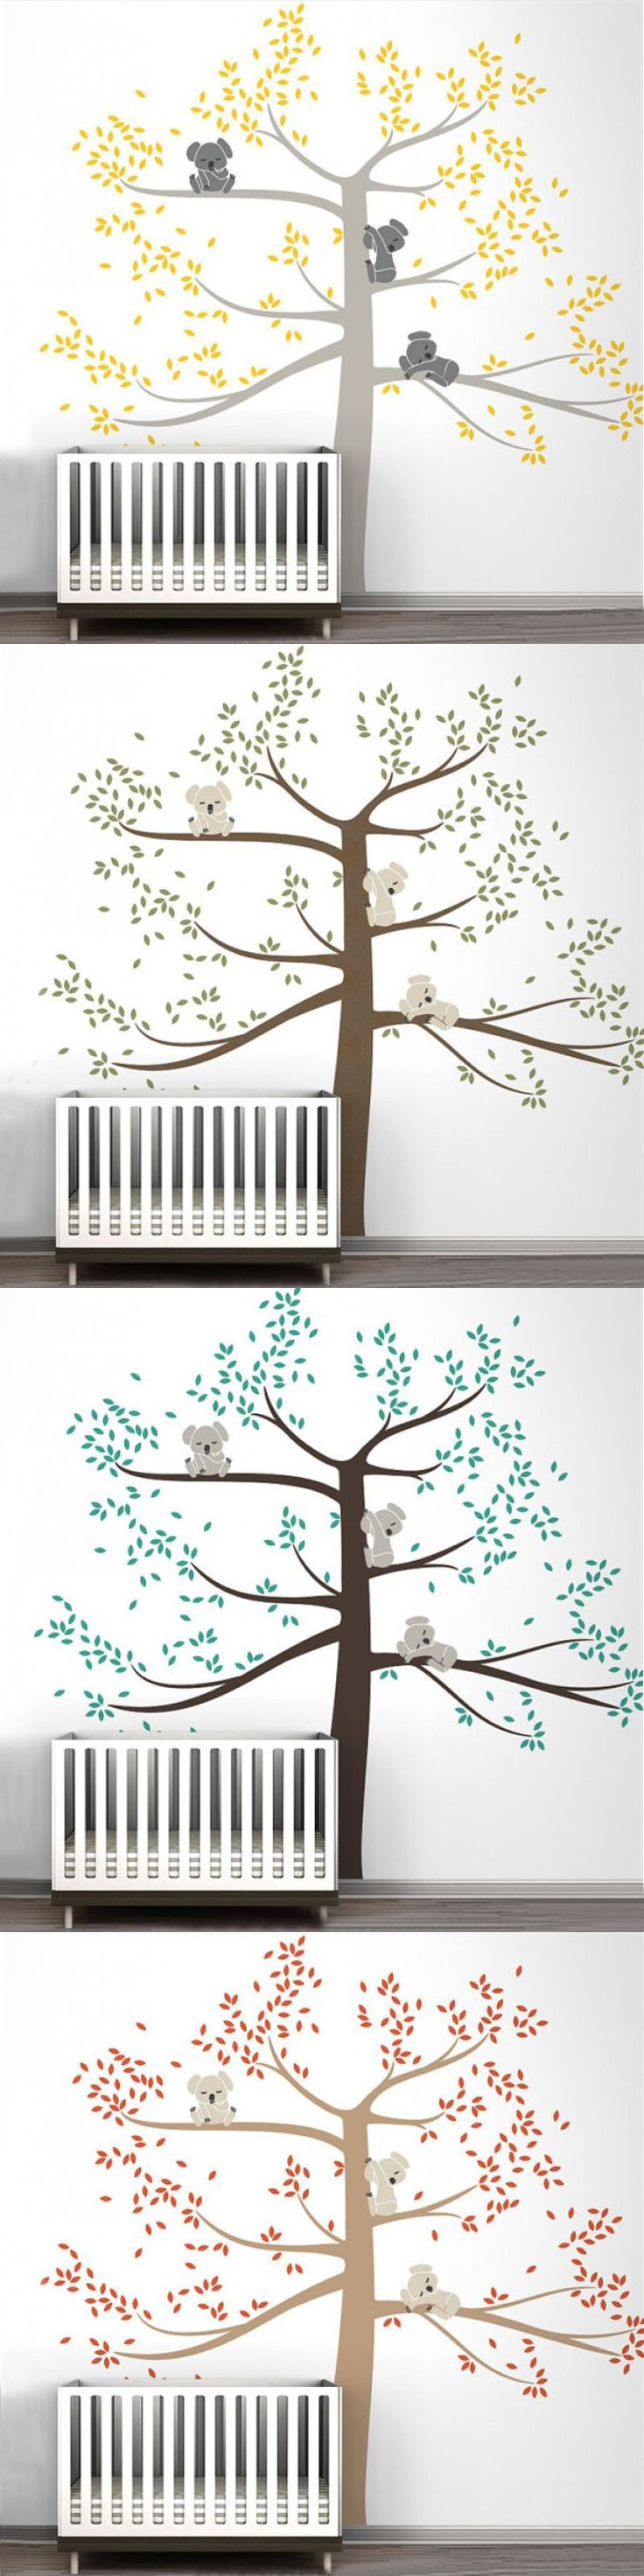 New Spring Koala Tree Vinyl Wall Decal Removable Wall Sticker Tree Nursery Vinyls Baby Room Decor Wall Stickers Home Decoration $49.98